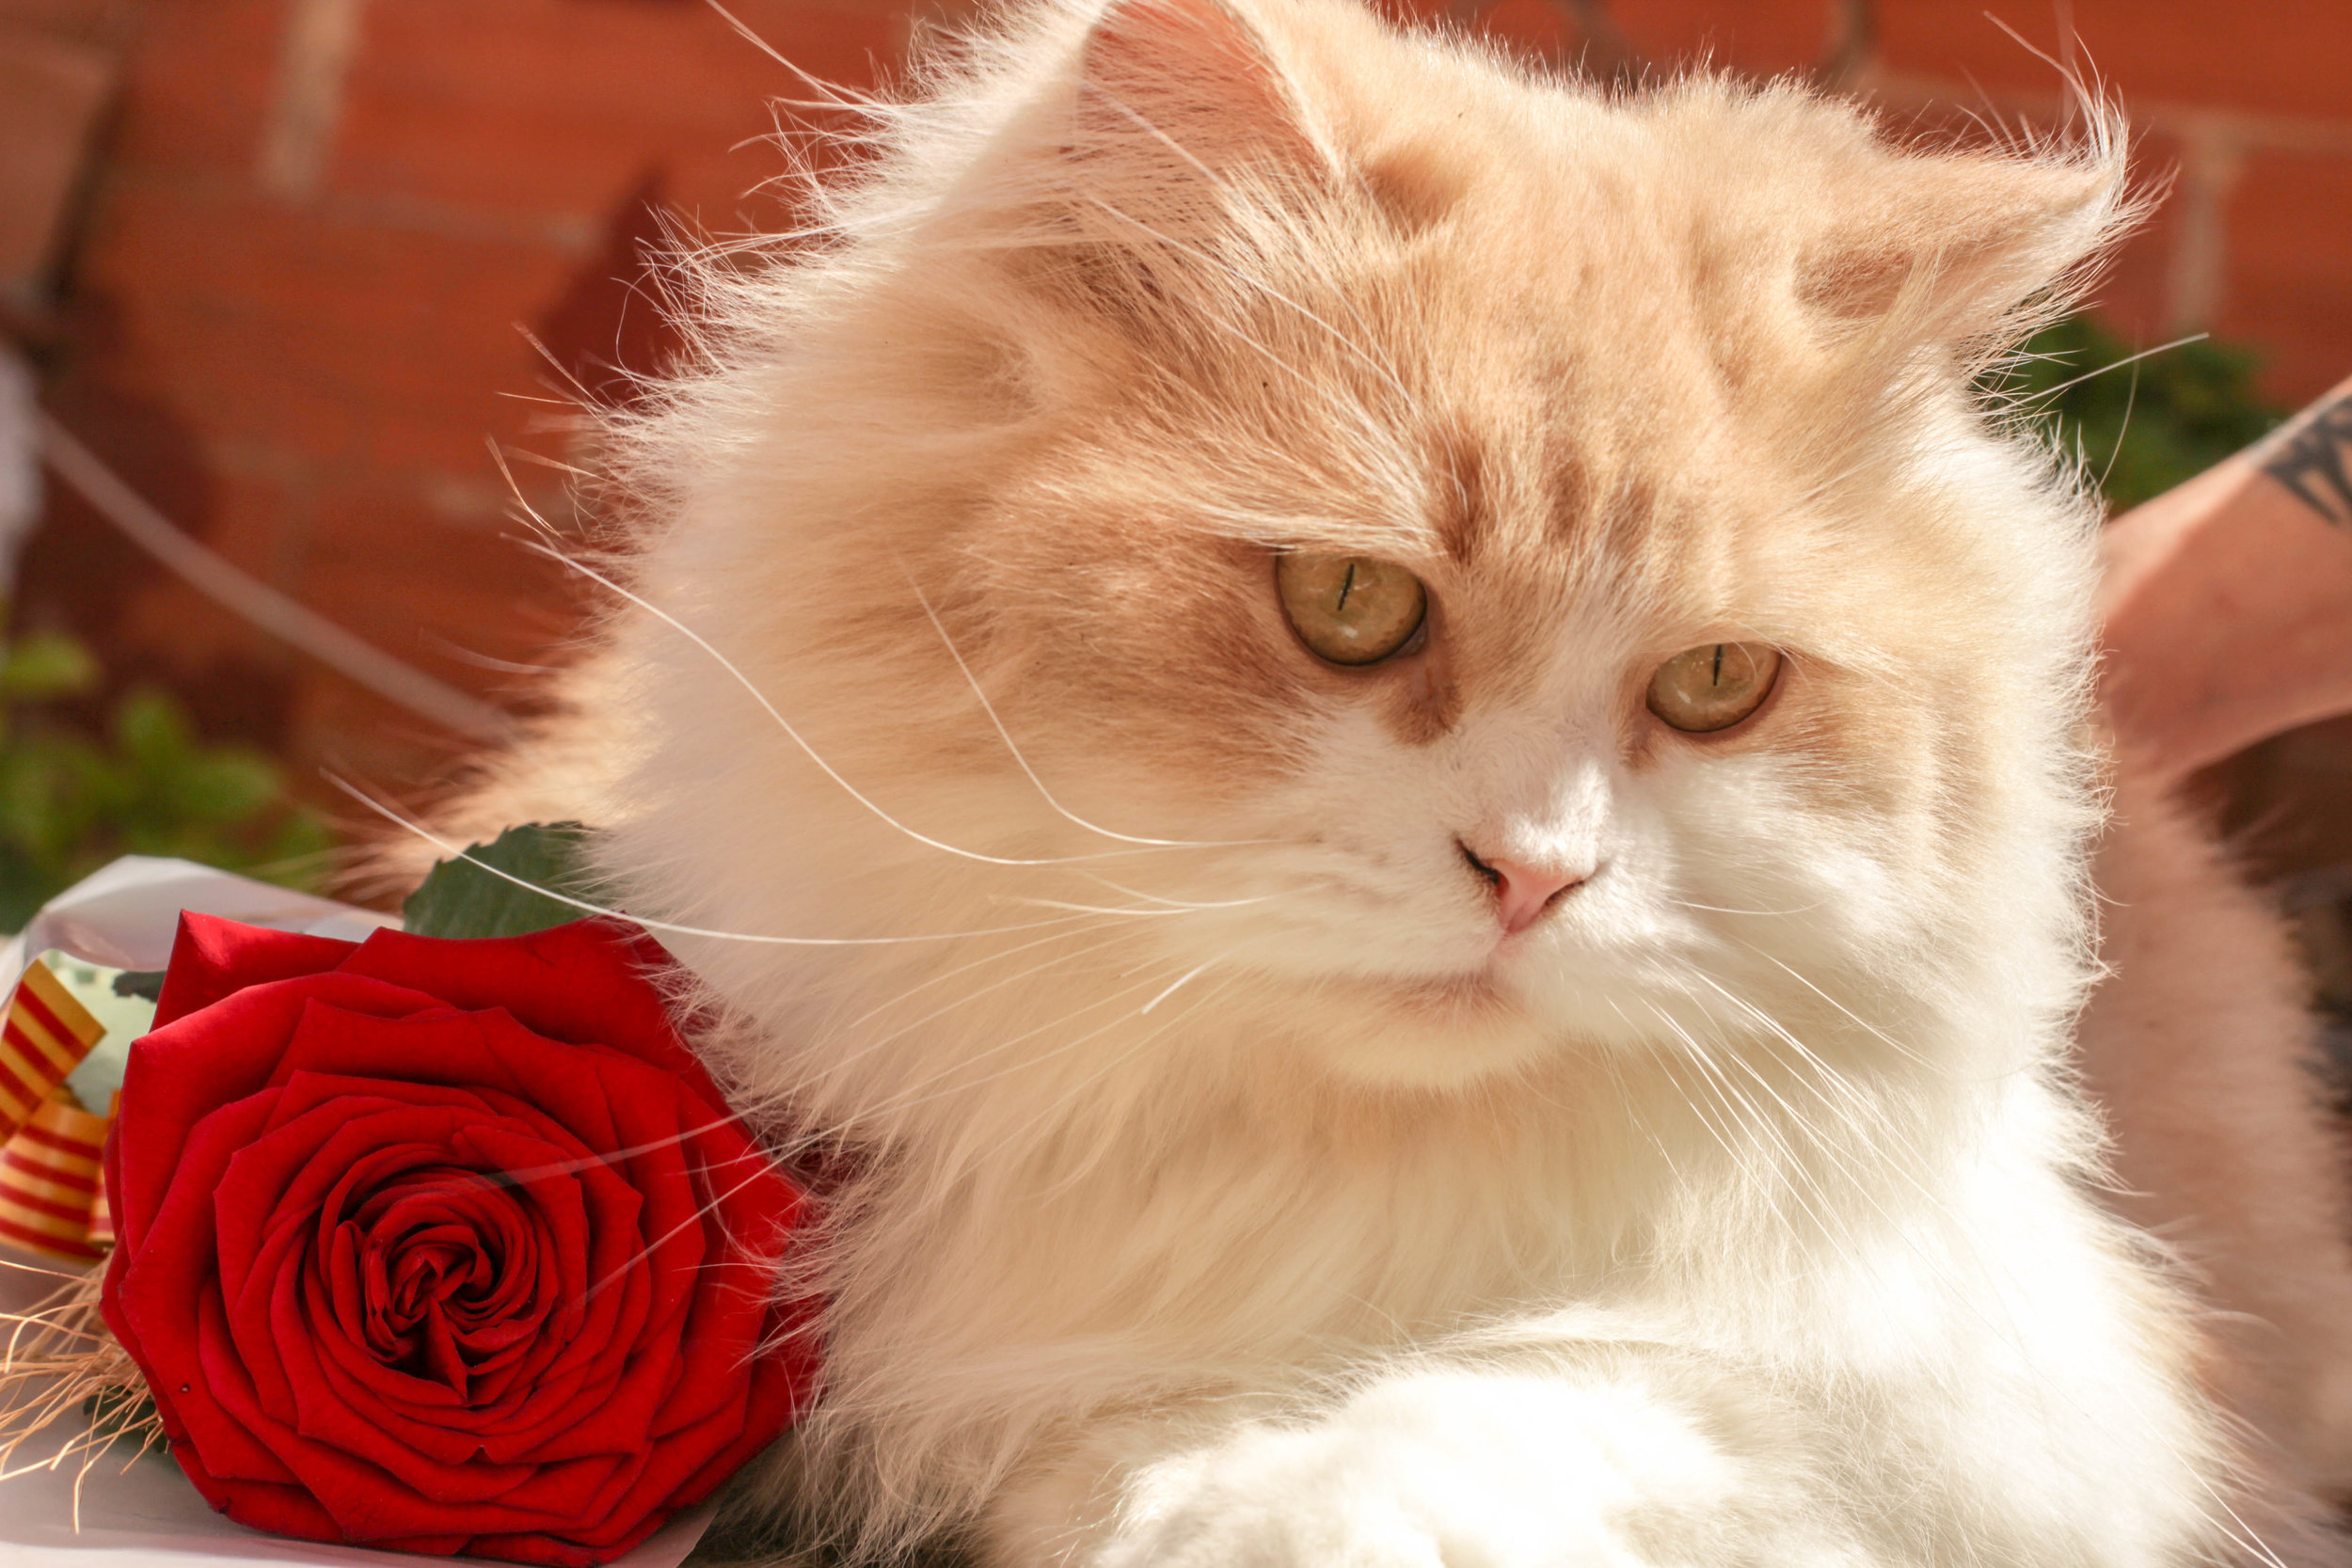 cat with rose.jpeg